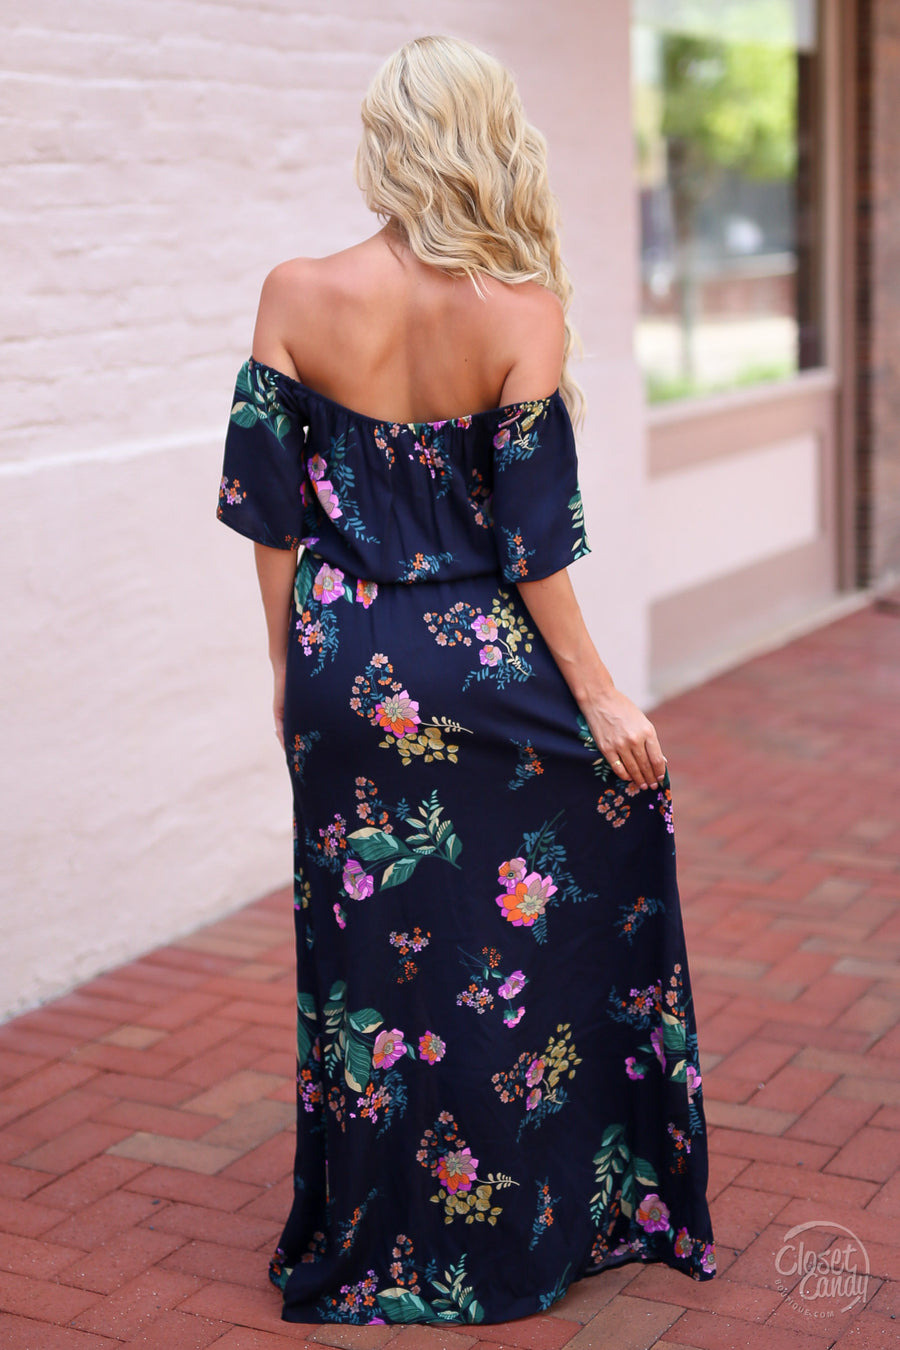 LOVE STITCH Open Water Maxi Dress - Navy